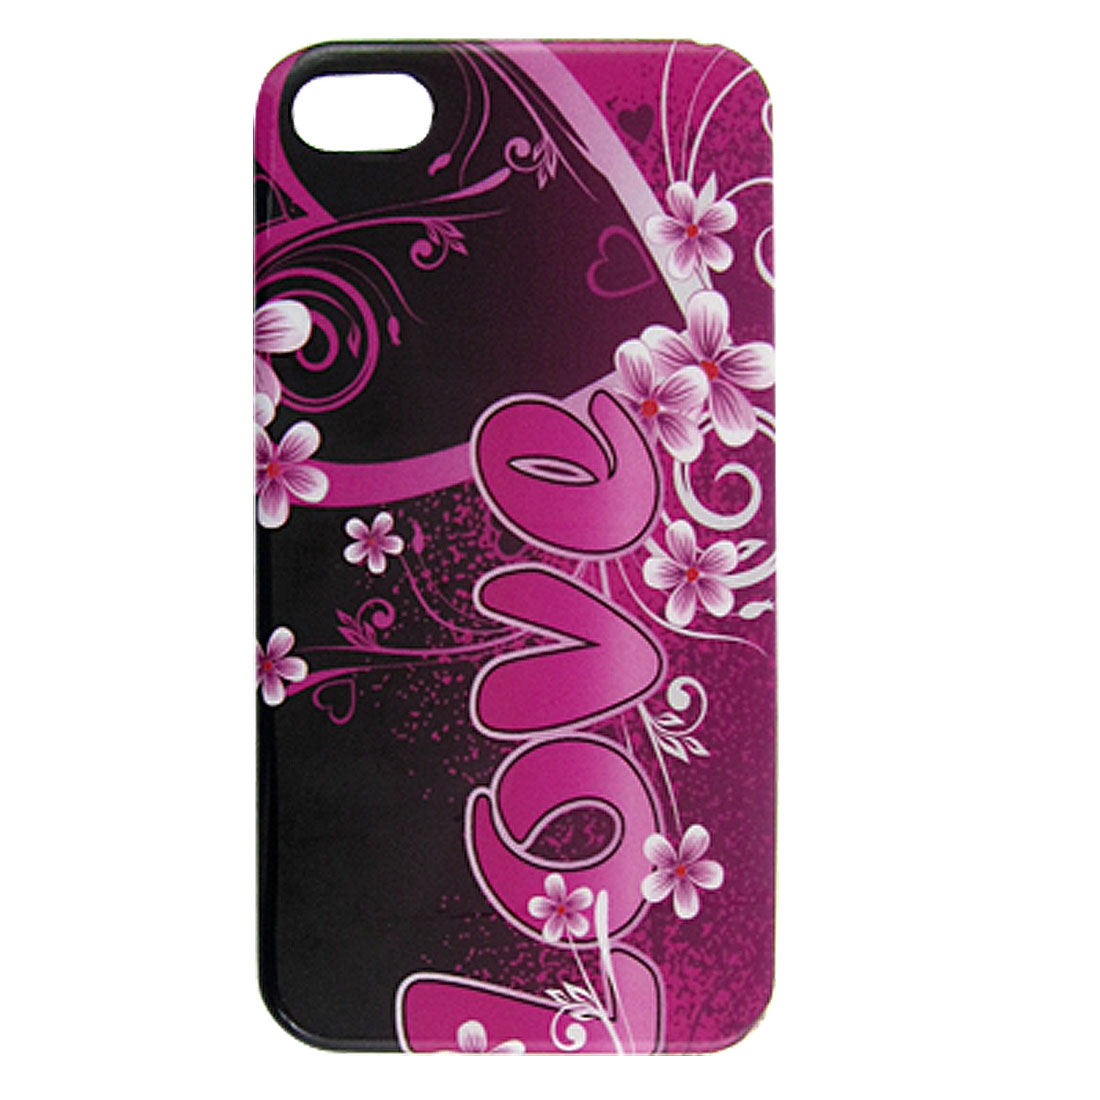 Magenta Floral Love Printed Hard IMD Plastic Back Case for iPhone 4 4G 4GS 4S